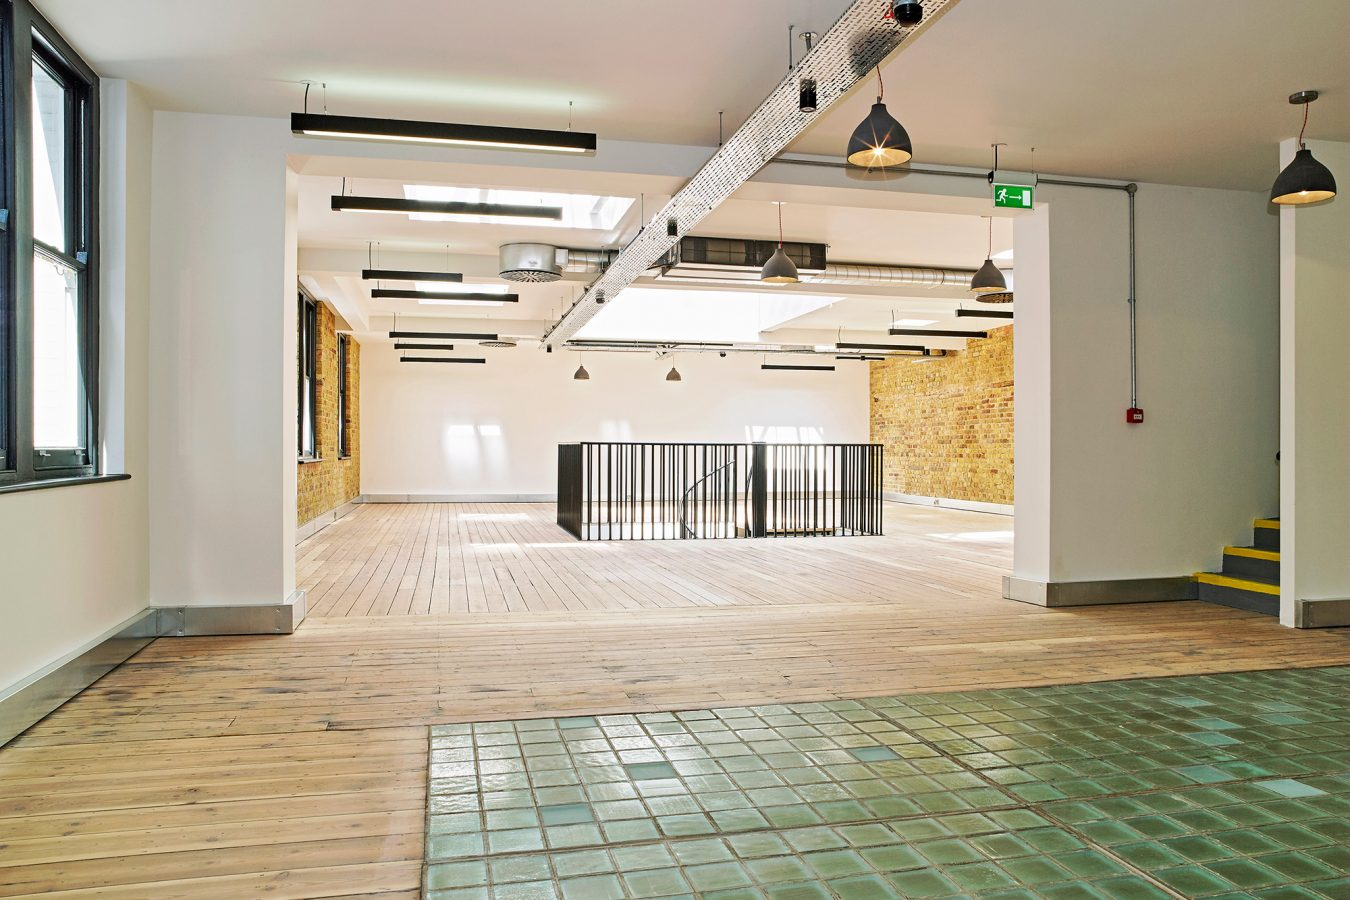 Reconditioned original building features in Diamond House such as brick walls, green tiles and hard wood floor.